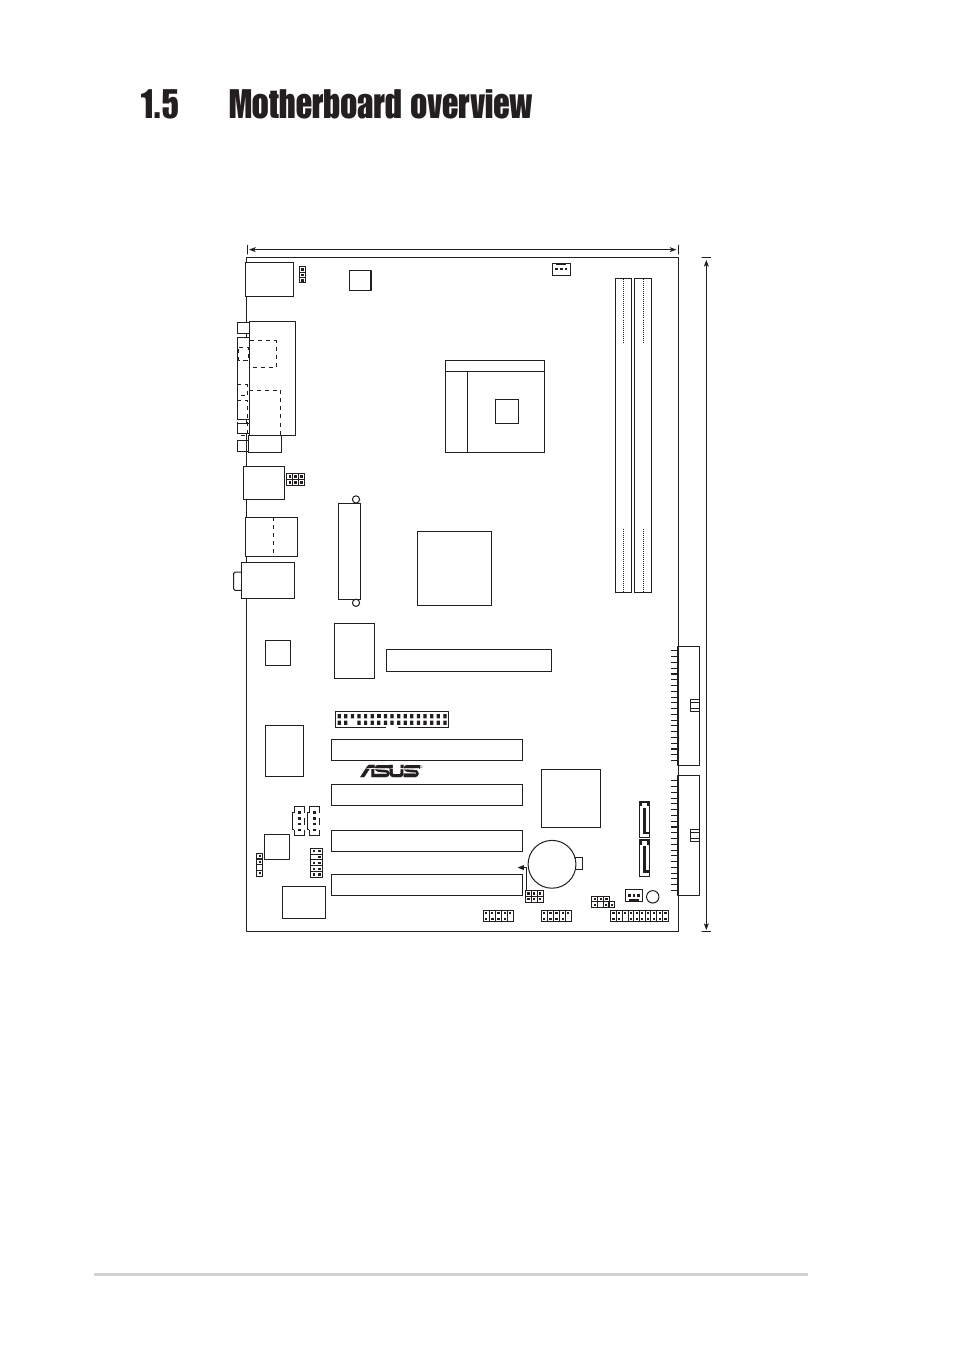 5 motherboard overview, 1 motherboard layout, 6 chapter 1